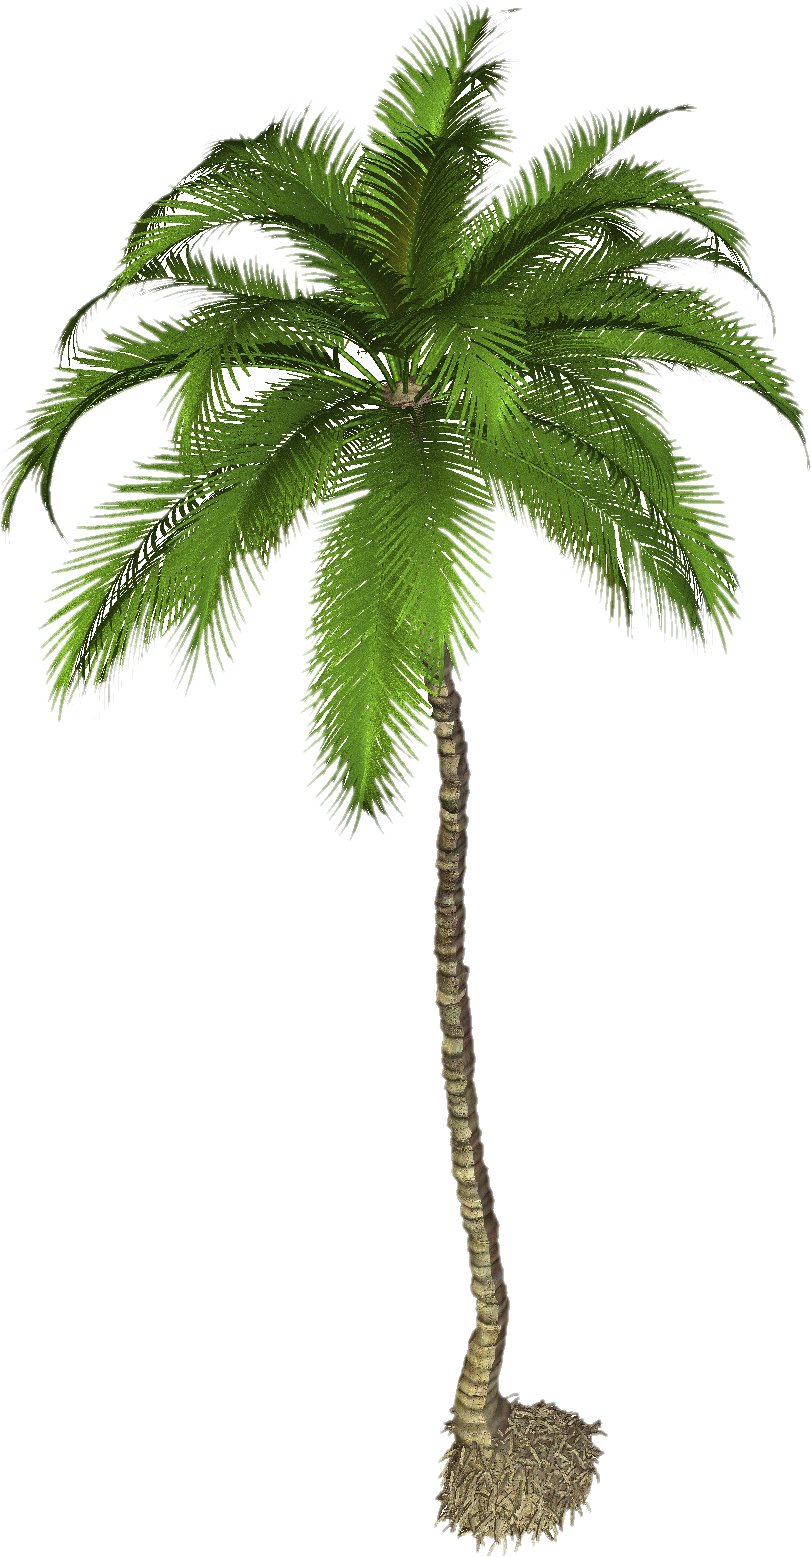 Png Coconut Tree - Coconut Tree Png Photo | Png Mart, Transparent background PNG HD thumbnail